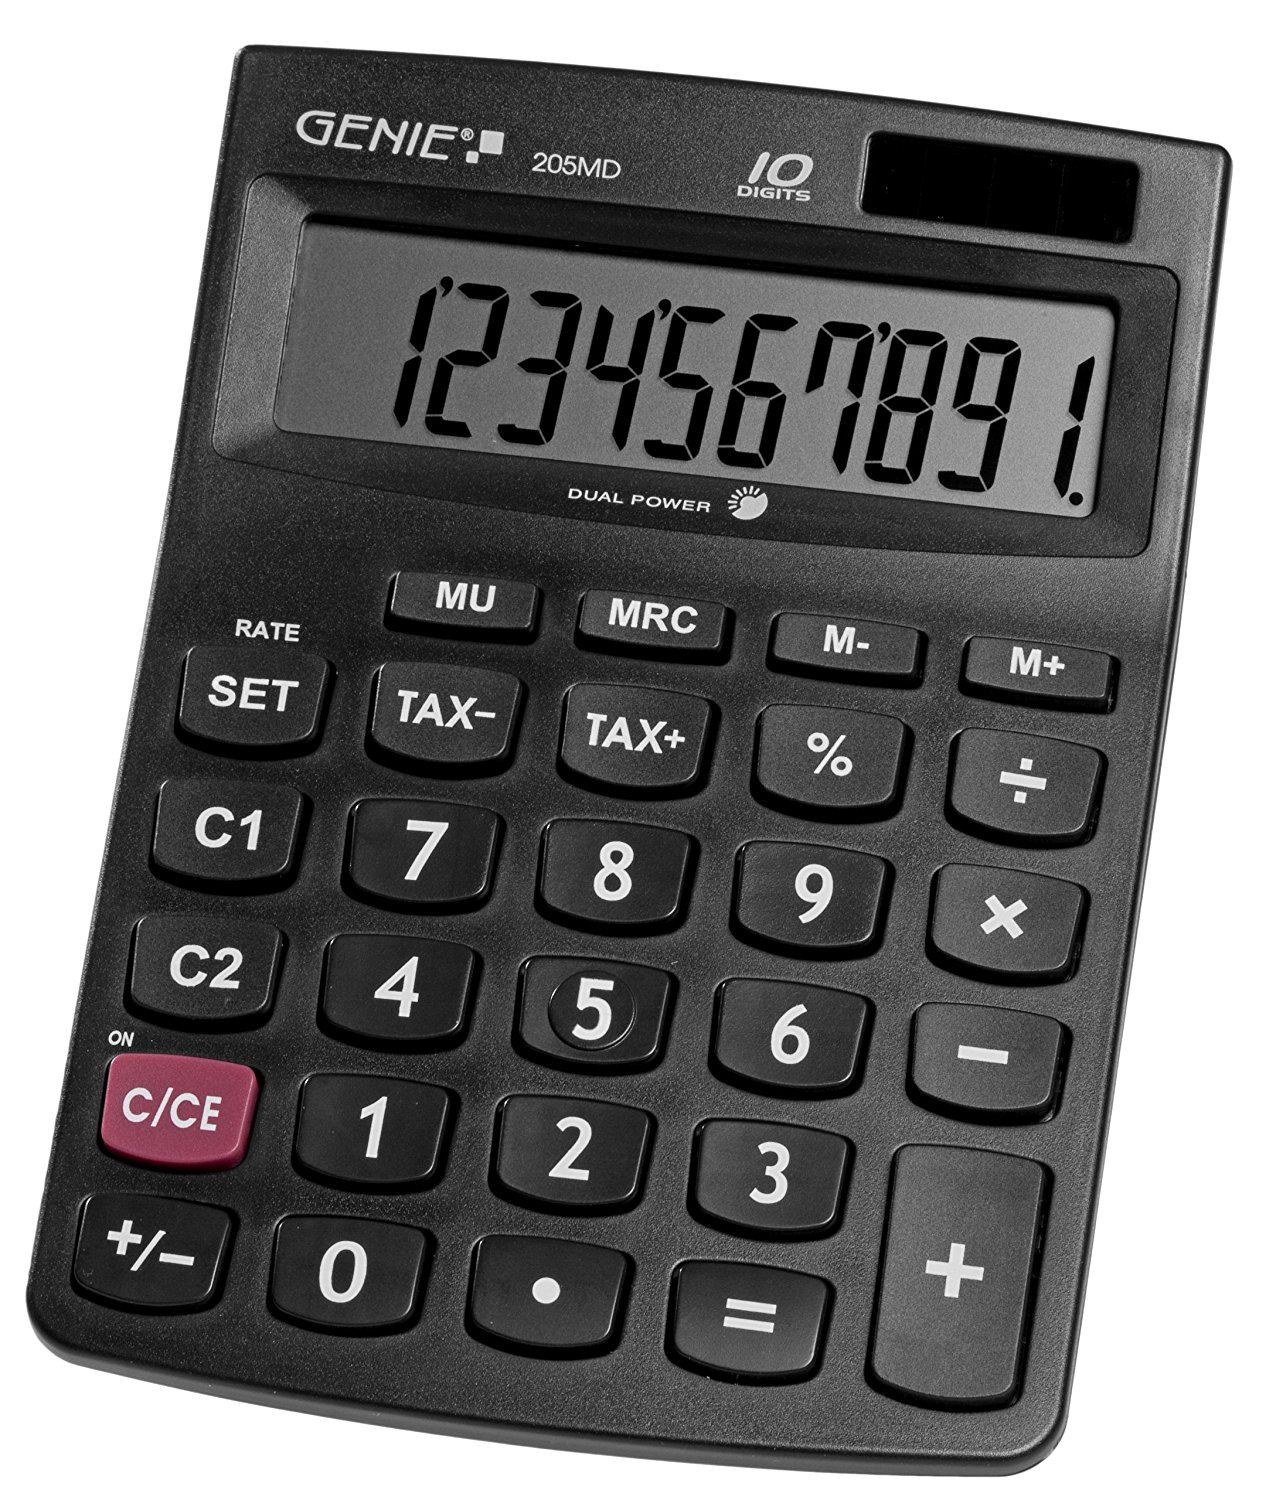 Desktop Calculator ValueX 205MD 10-Digit Desktop Calculator